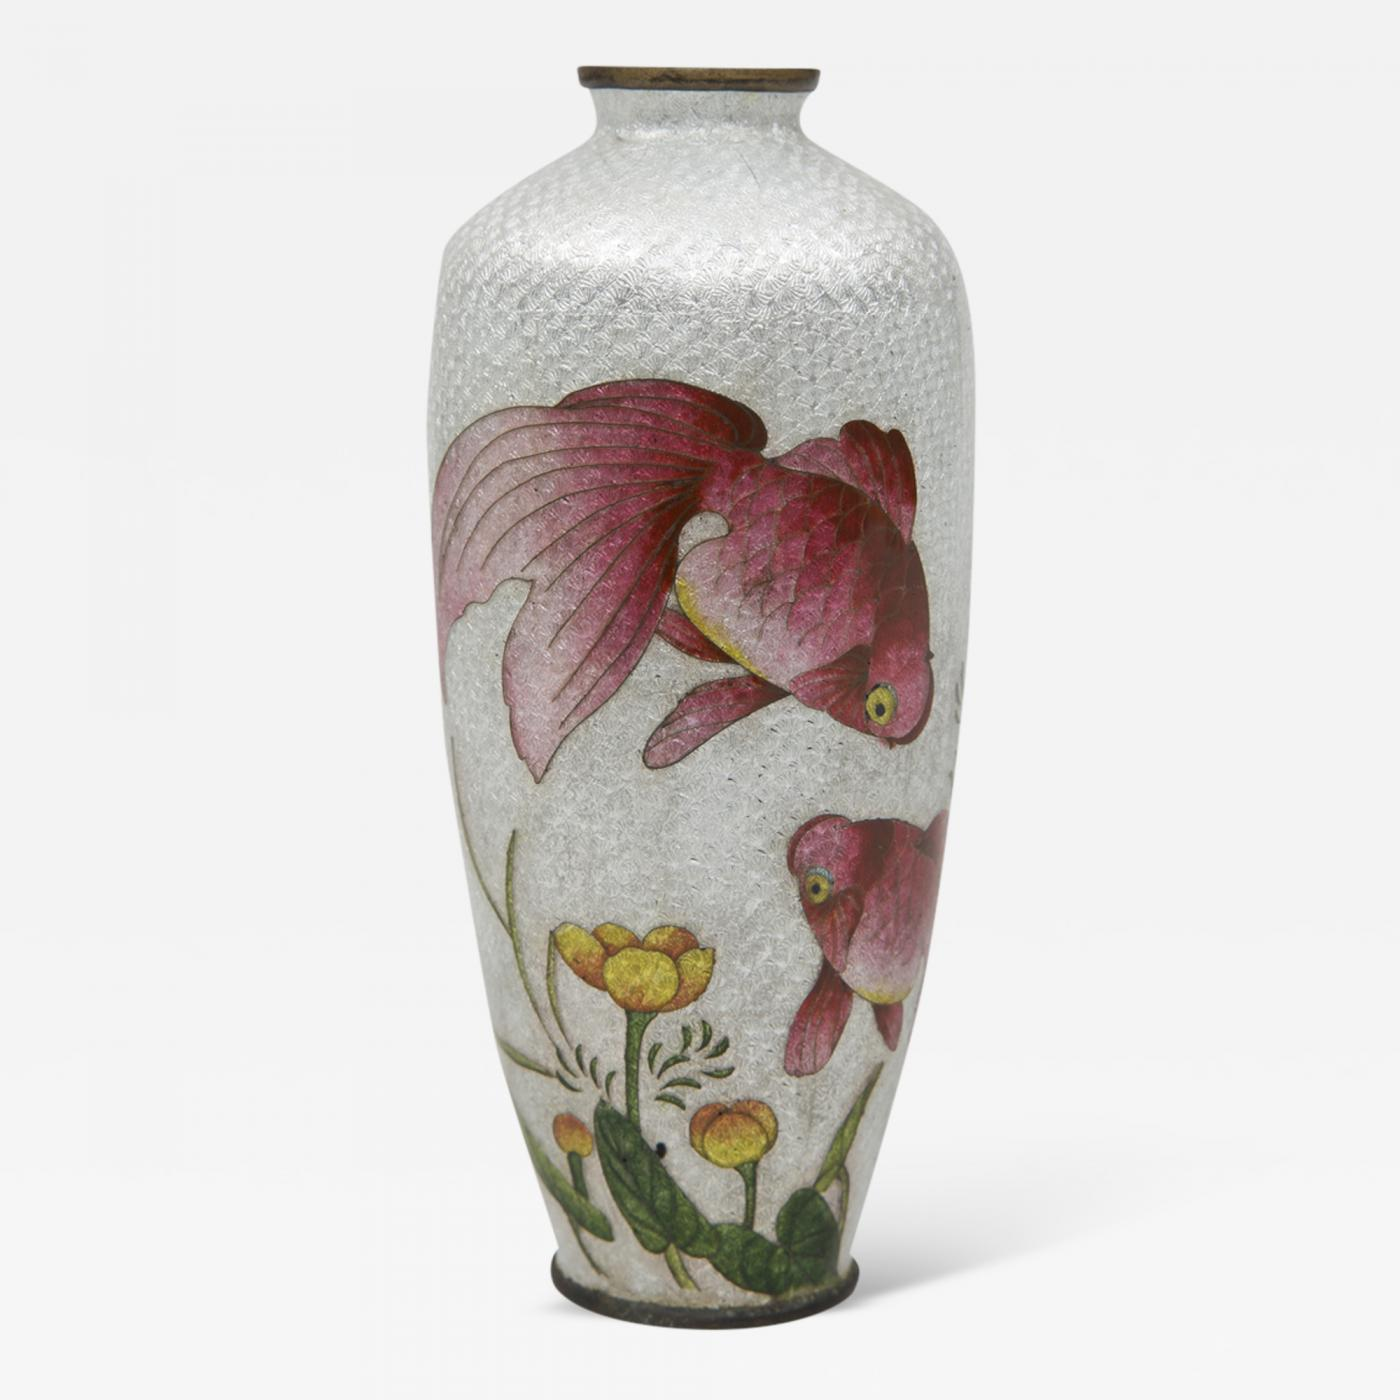 Japanese Ginbari Cloisonne Vase, Meiji Period on decorative beads, decorative kitchenware, decorative porcelain, decorative containers, decorative art, decorative pillows, decorative curtains, decorative boxes, decorative bowls, decorative glassware, decorative pottery, decorative decanters, decorative cards, decorative bells, decorative index tabs, decorative perfume bottles, decorative glass, decorative planters, decorative flowers, decorative jugs,